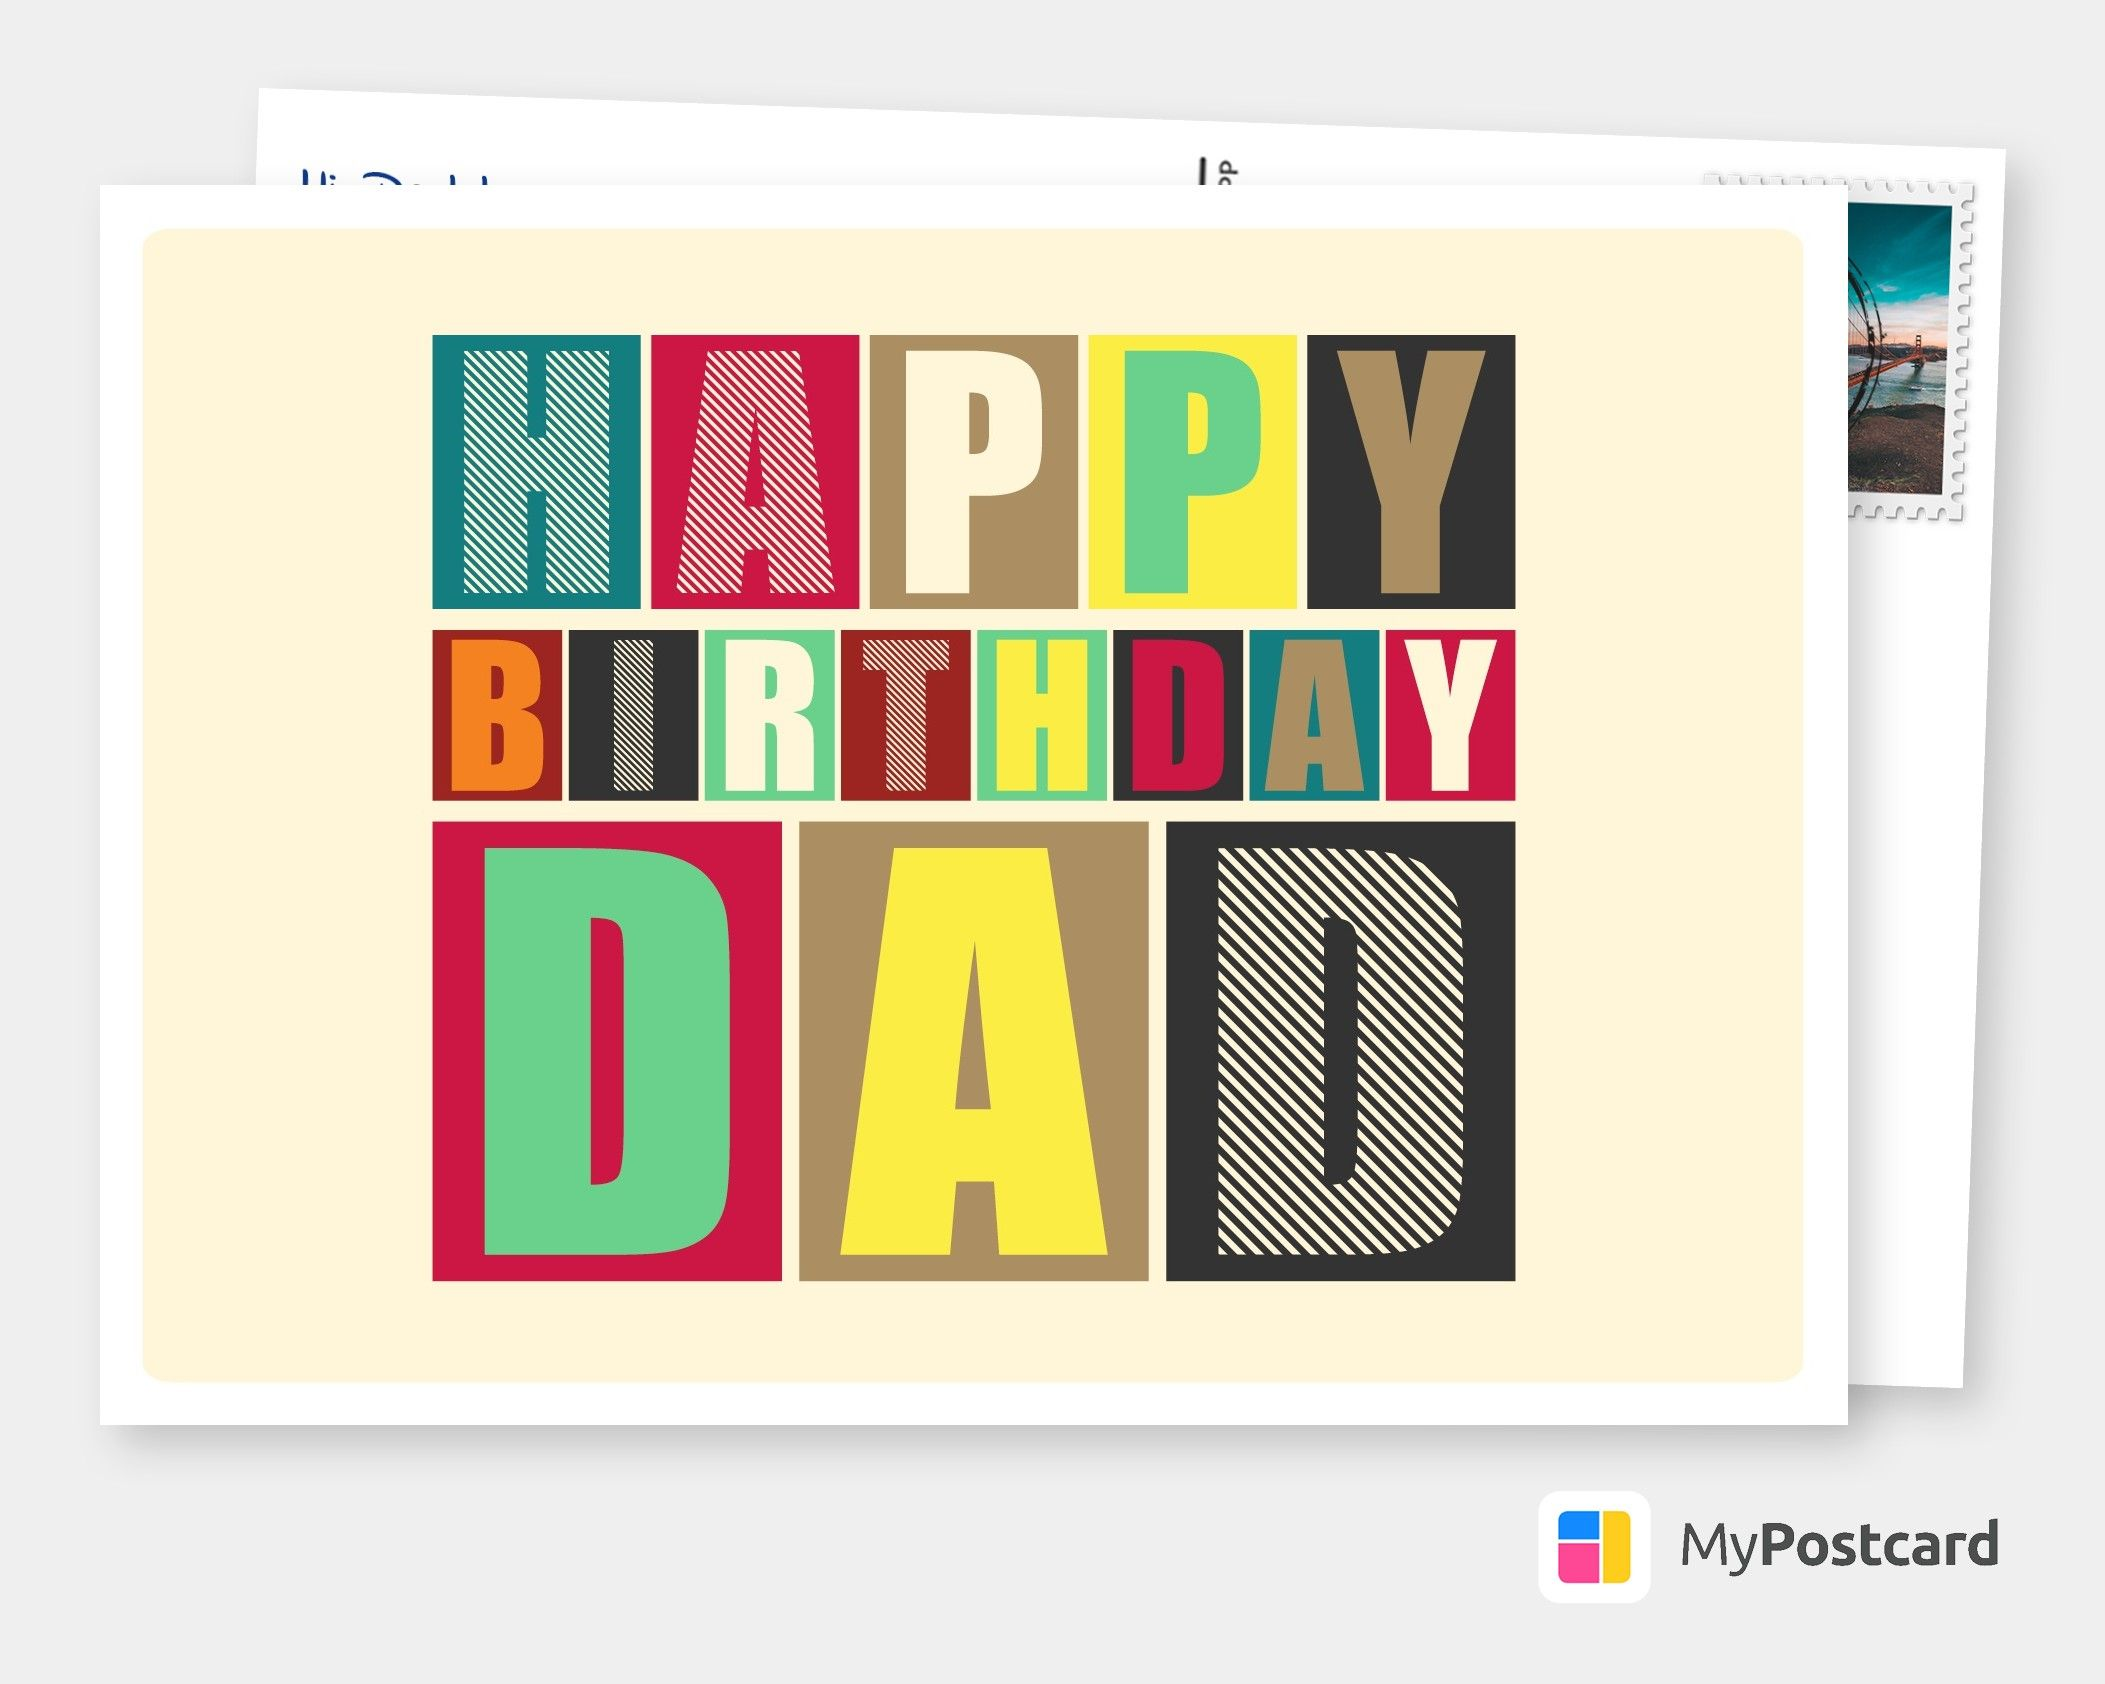 Personalized Birthday Cards Online Printed Mailede For You International Free Shipping Postage Delivery Photo Cards Postcards Greeting Cards Birthday Card Online Birthday Greeting Cards Birthday Postcards